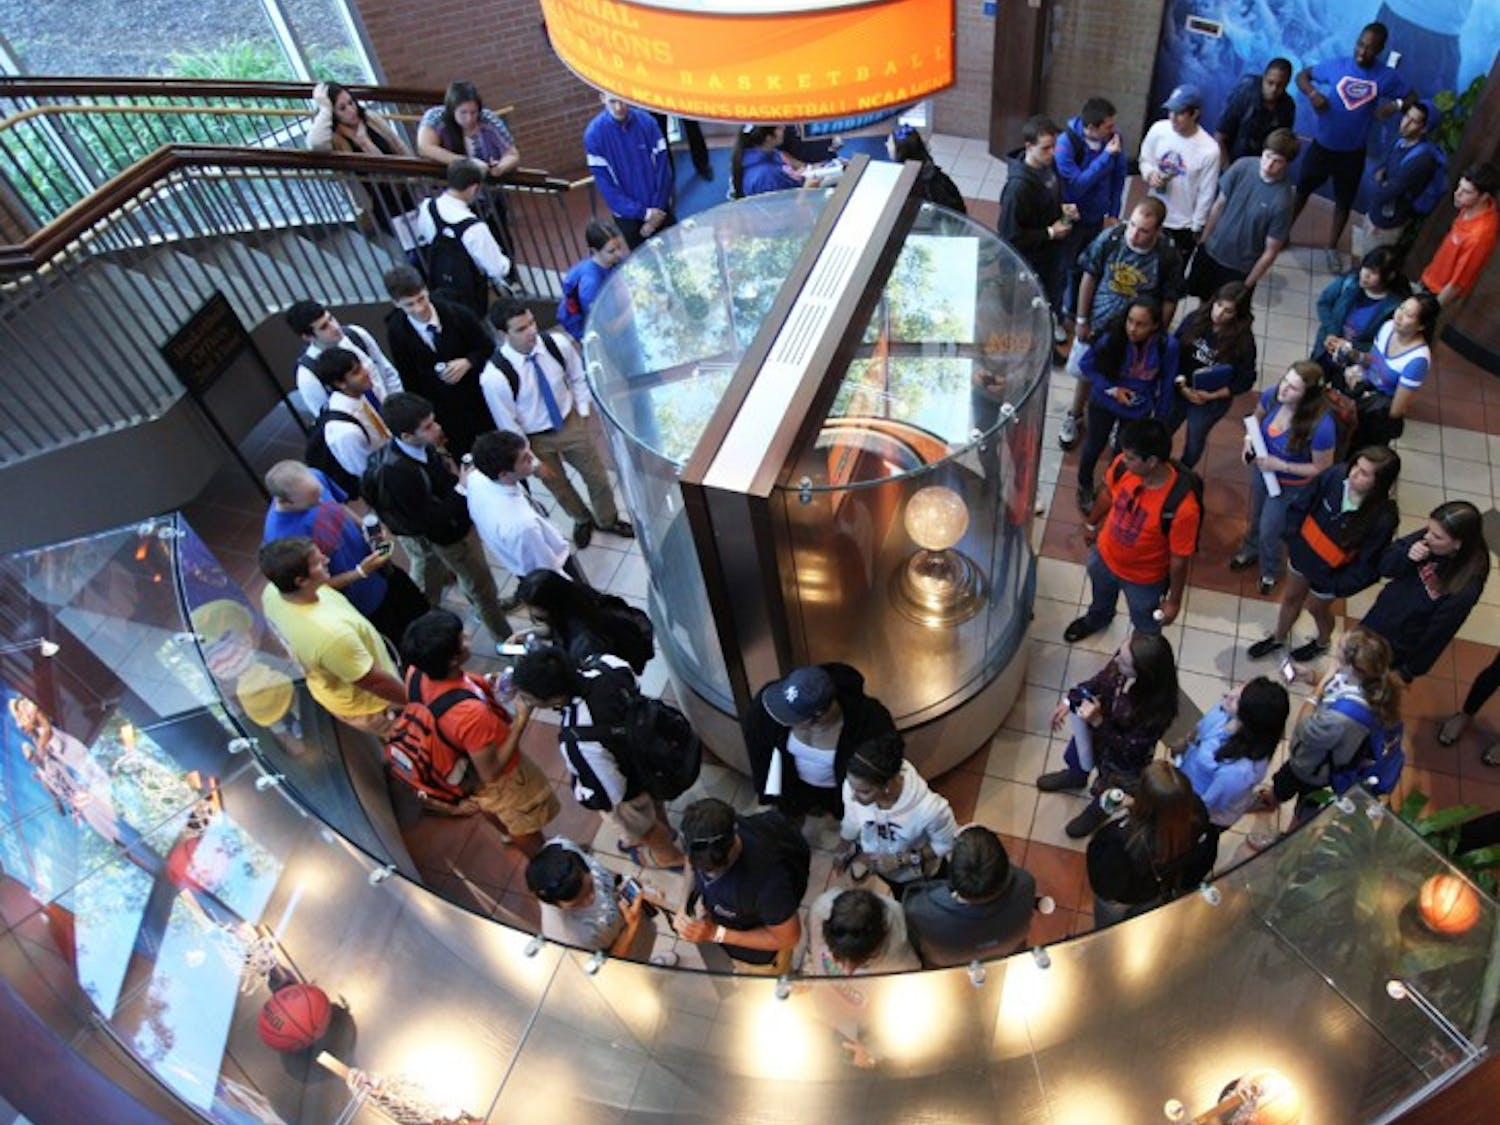 Students gather in the lobby of the basketball complex during a tour of the practice facility at Rowdy Fest Monday night. Following the tour, students ate pizza and had a meet and greet with the men's basketball players and coaches.